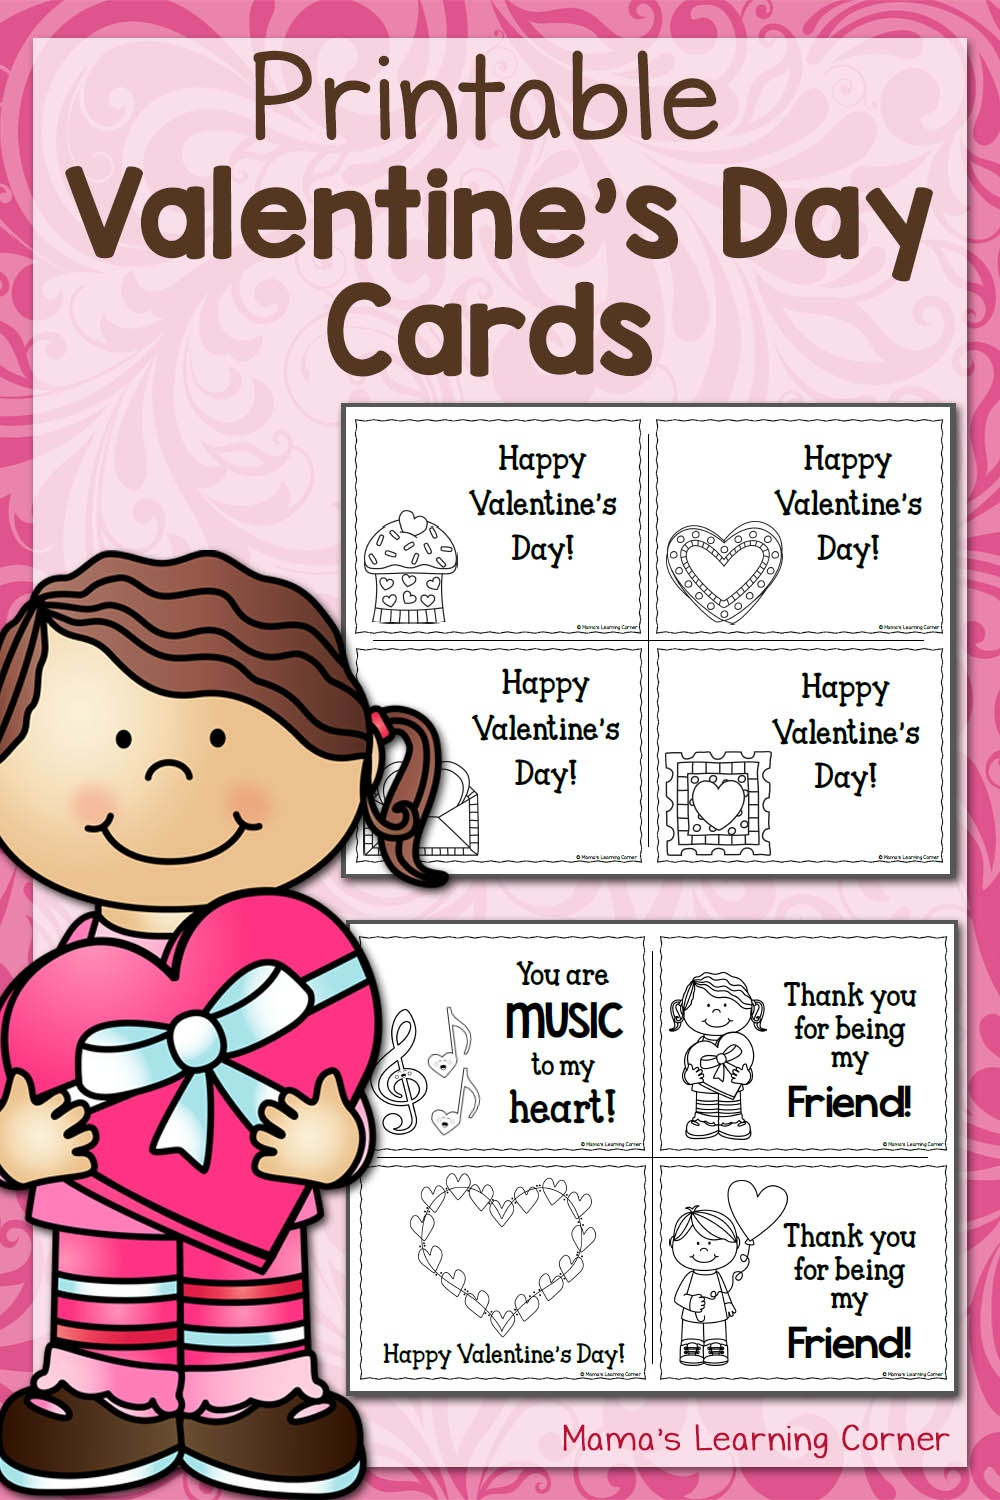 Printable Valentine's Day Cards - Mamas Learning Corner - Free Printable Grade Cards